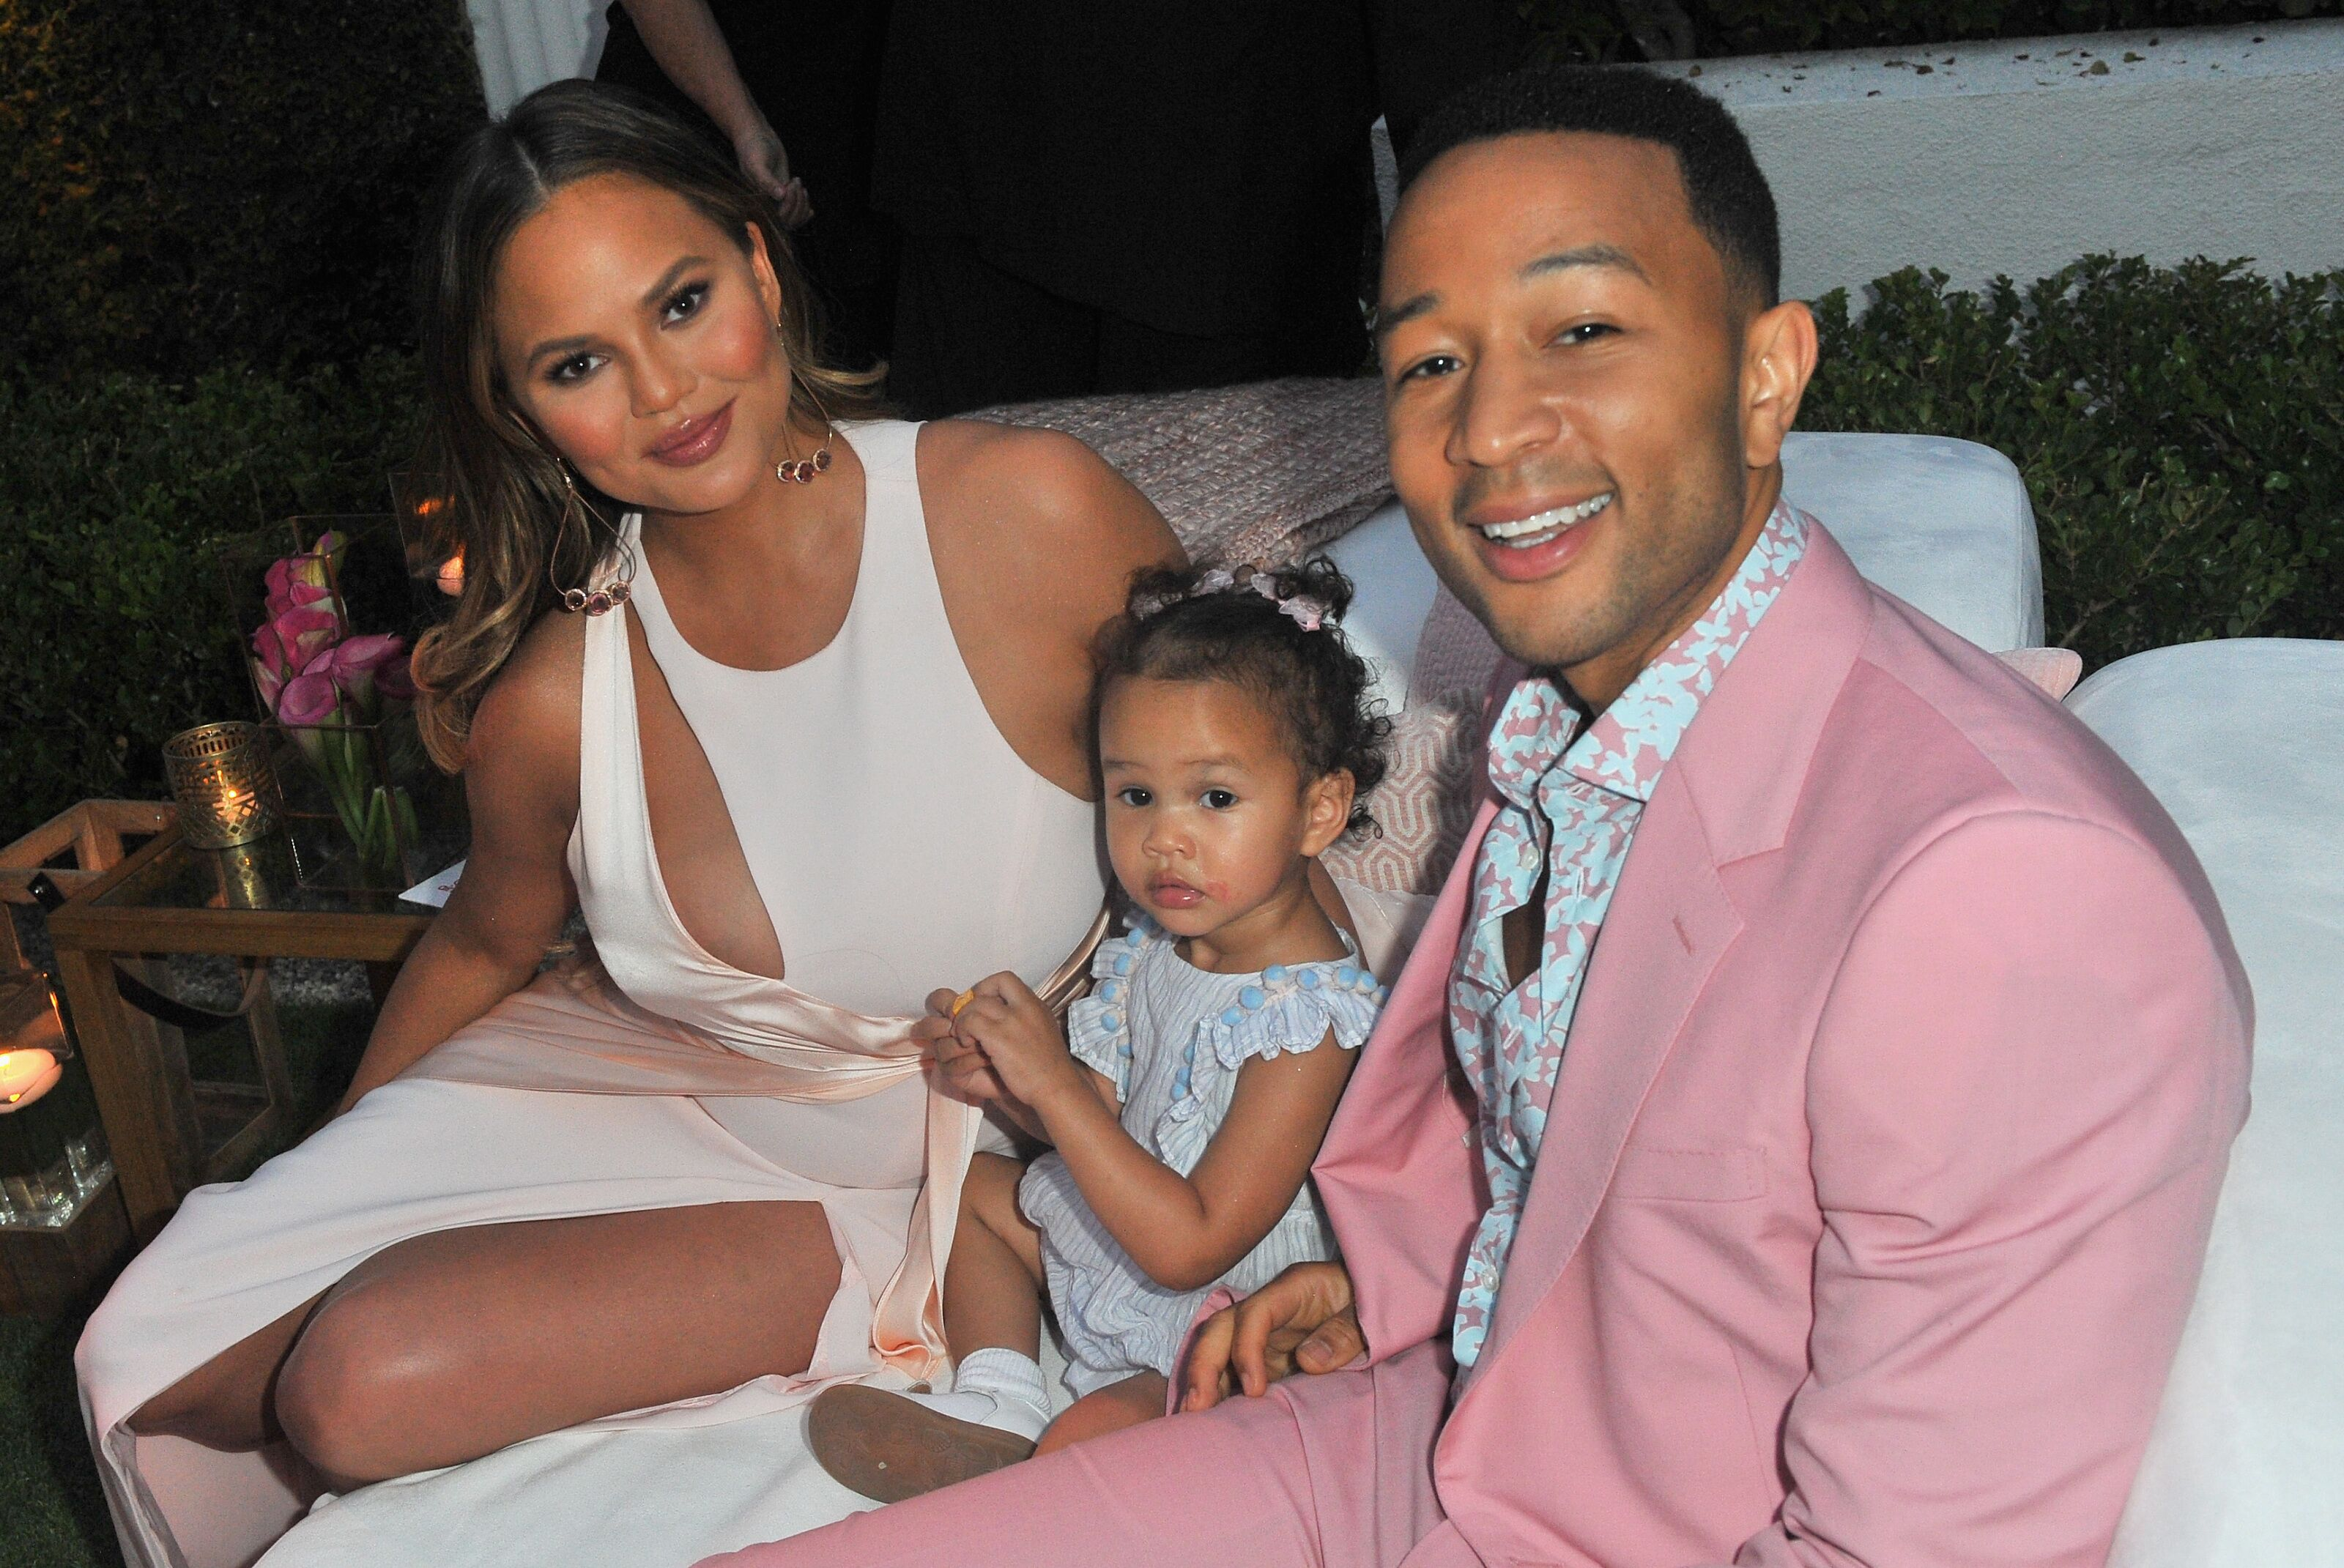 Wonder Woman of the Week: Chrissy Teigen, a celebrity mom who keeps it hilariously real